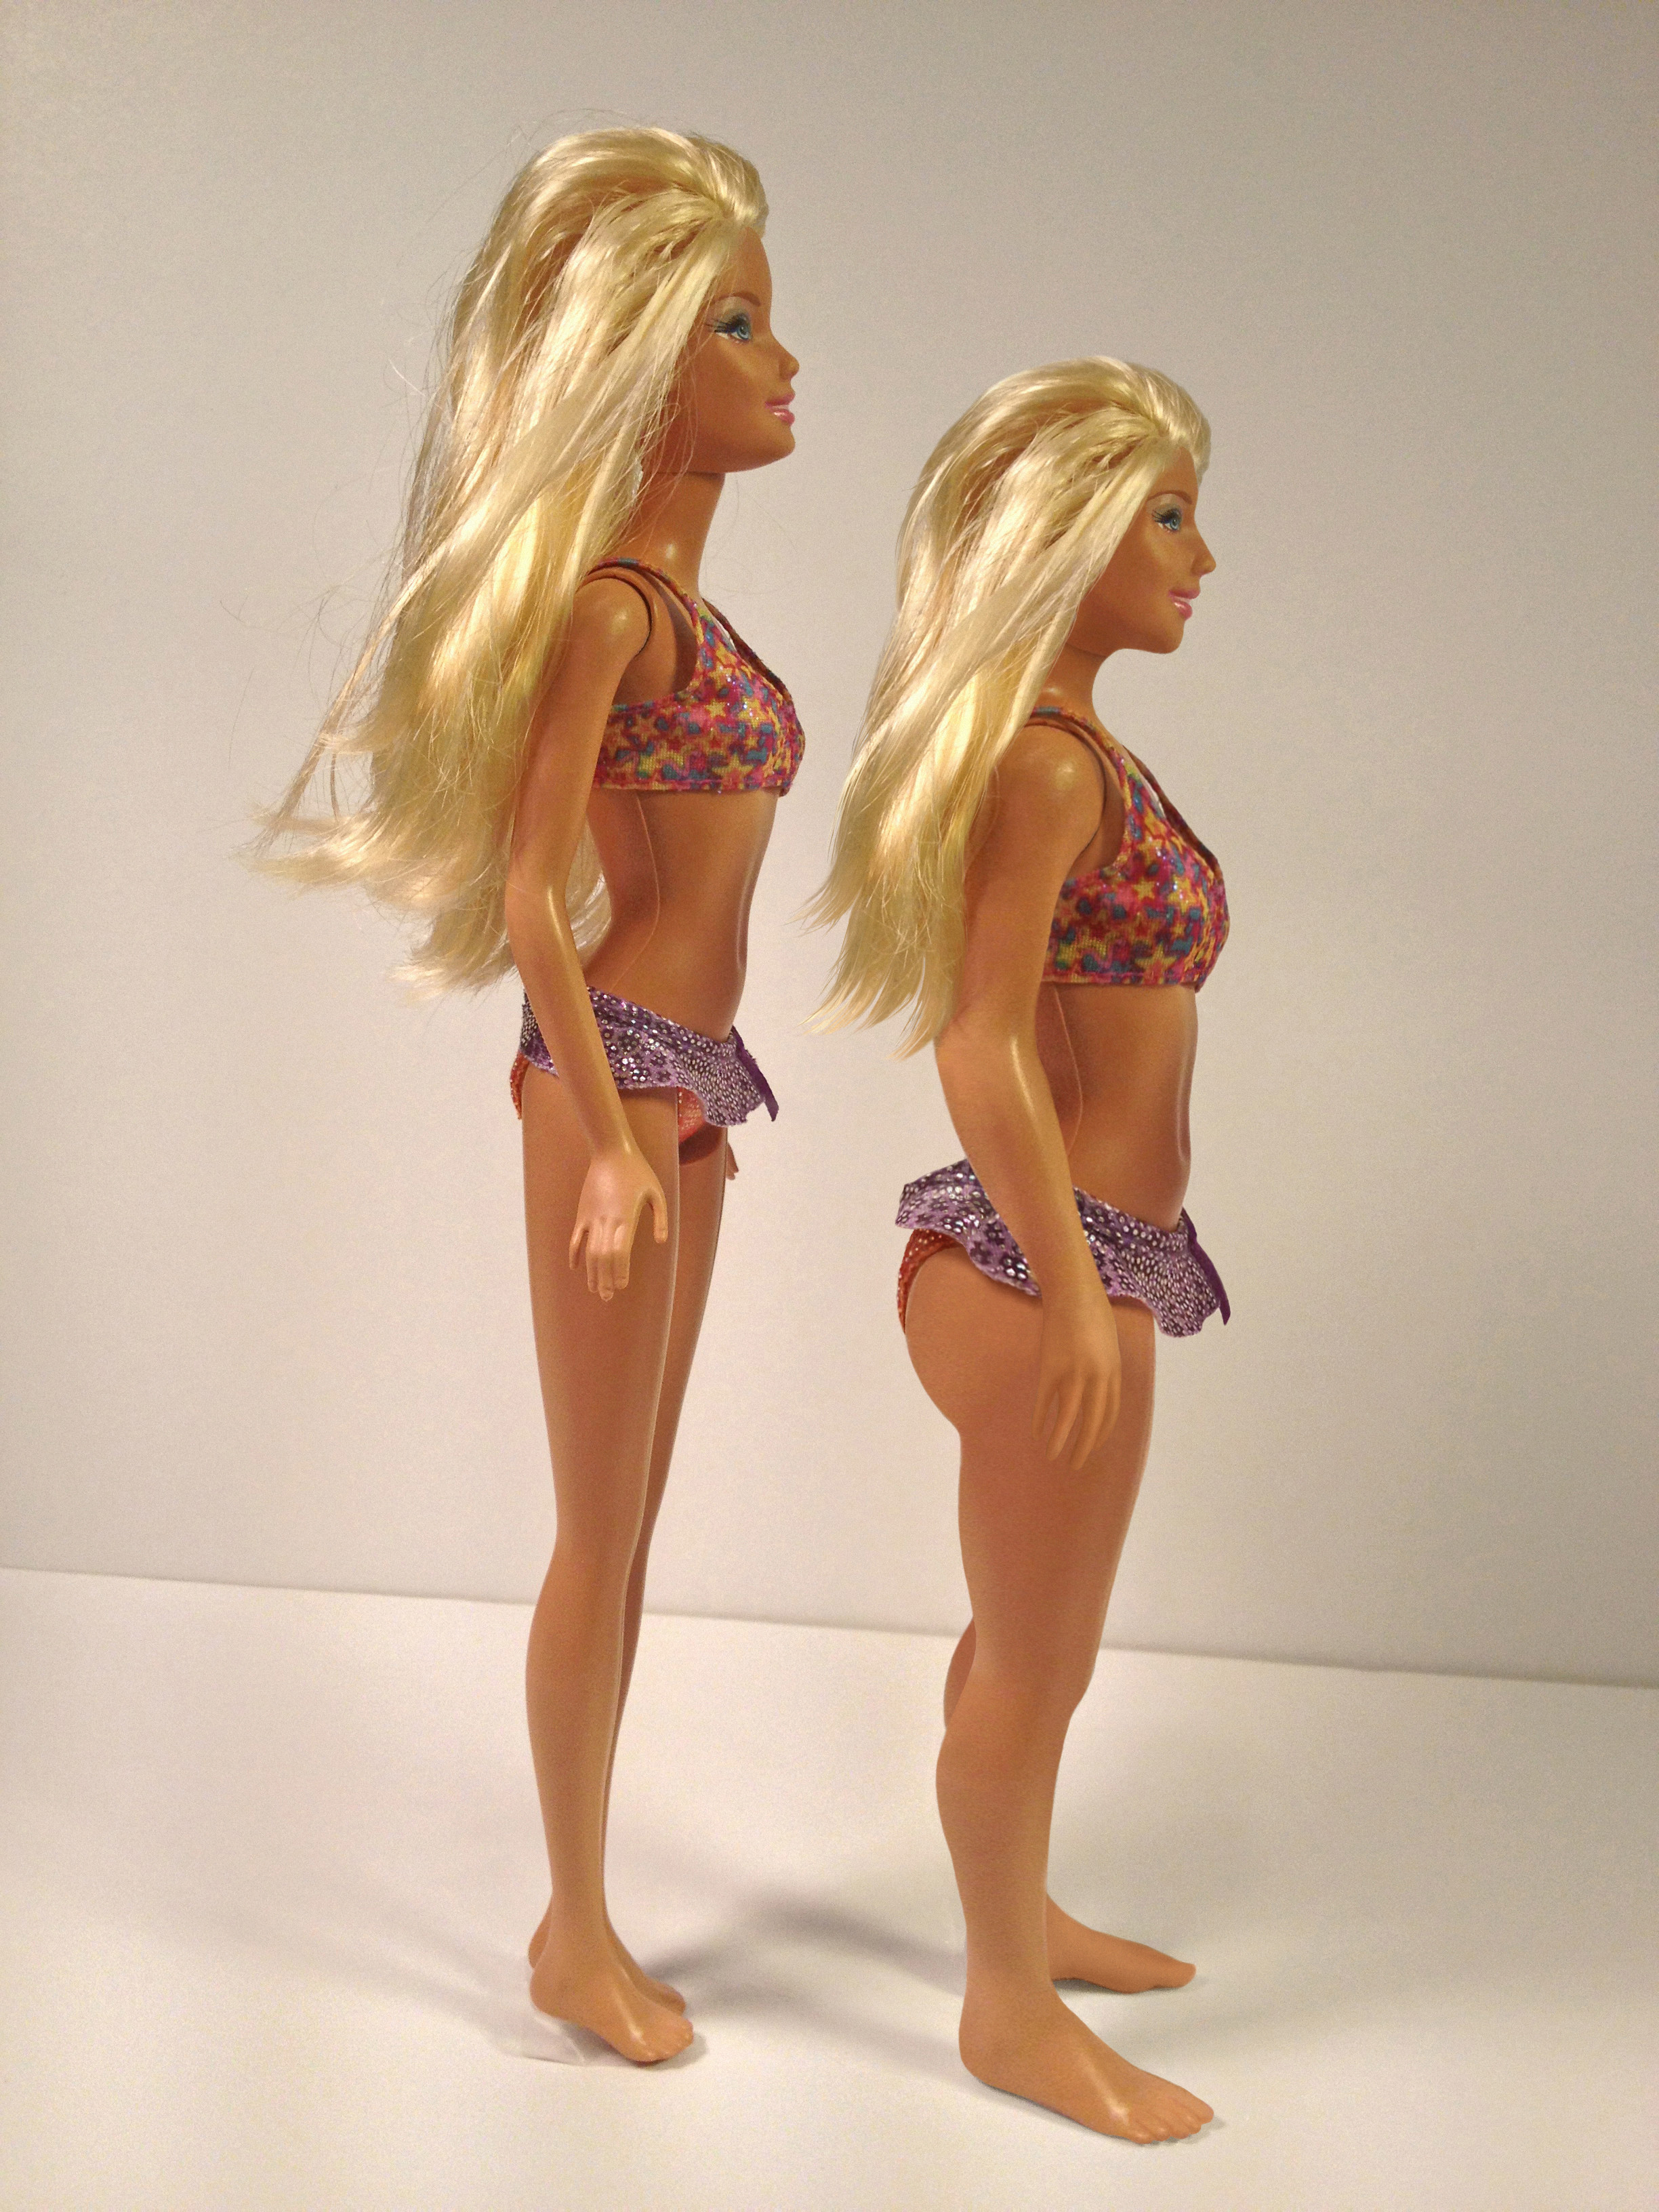 Barbie look what like should